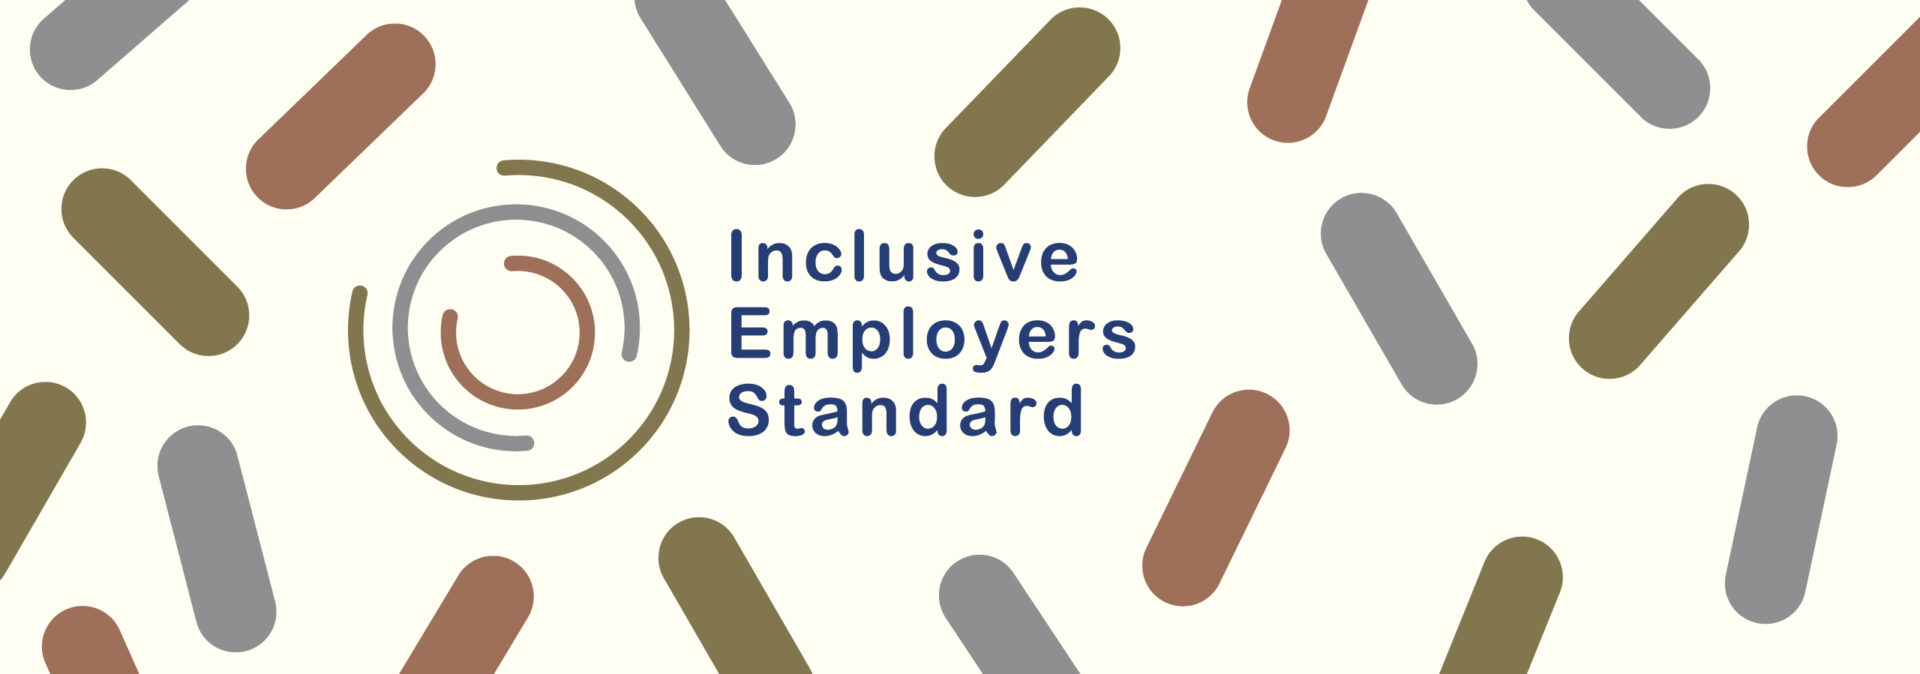 Celebrating the Inclusive Employers Standard